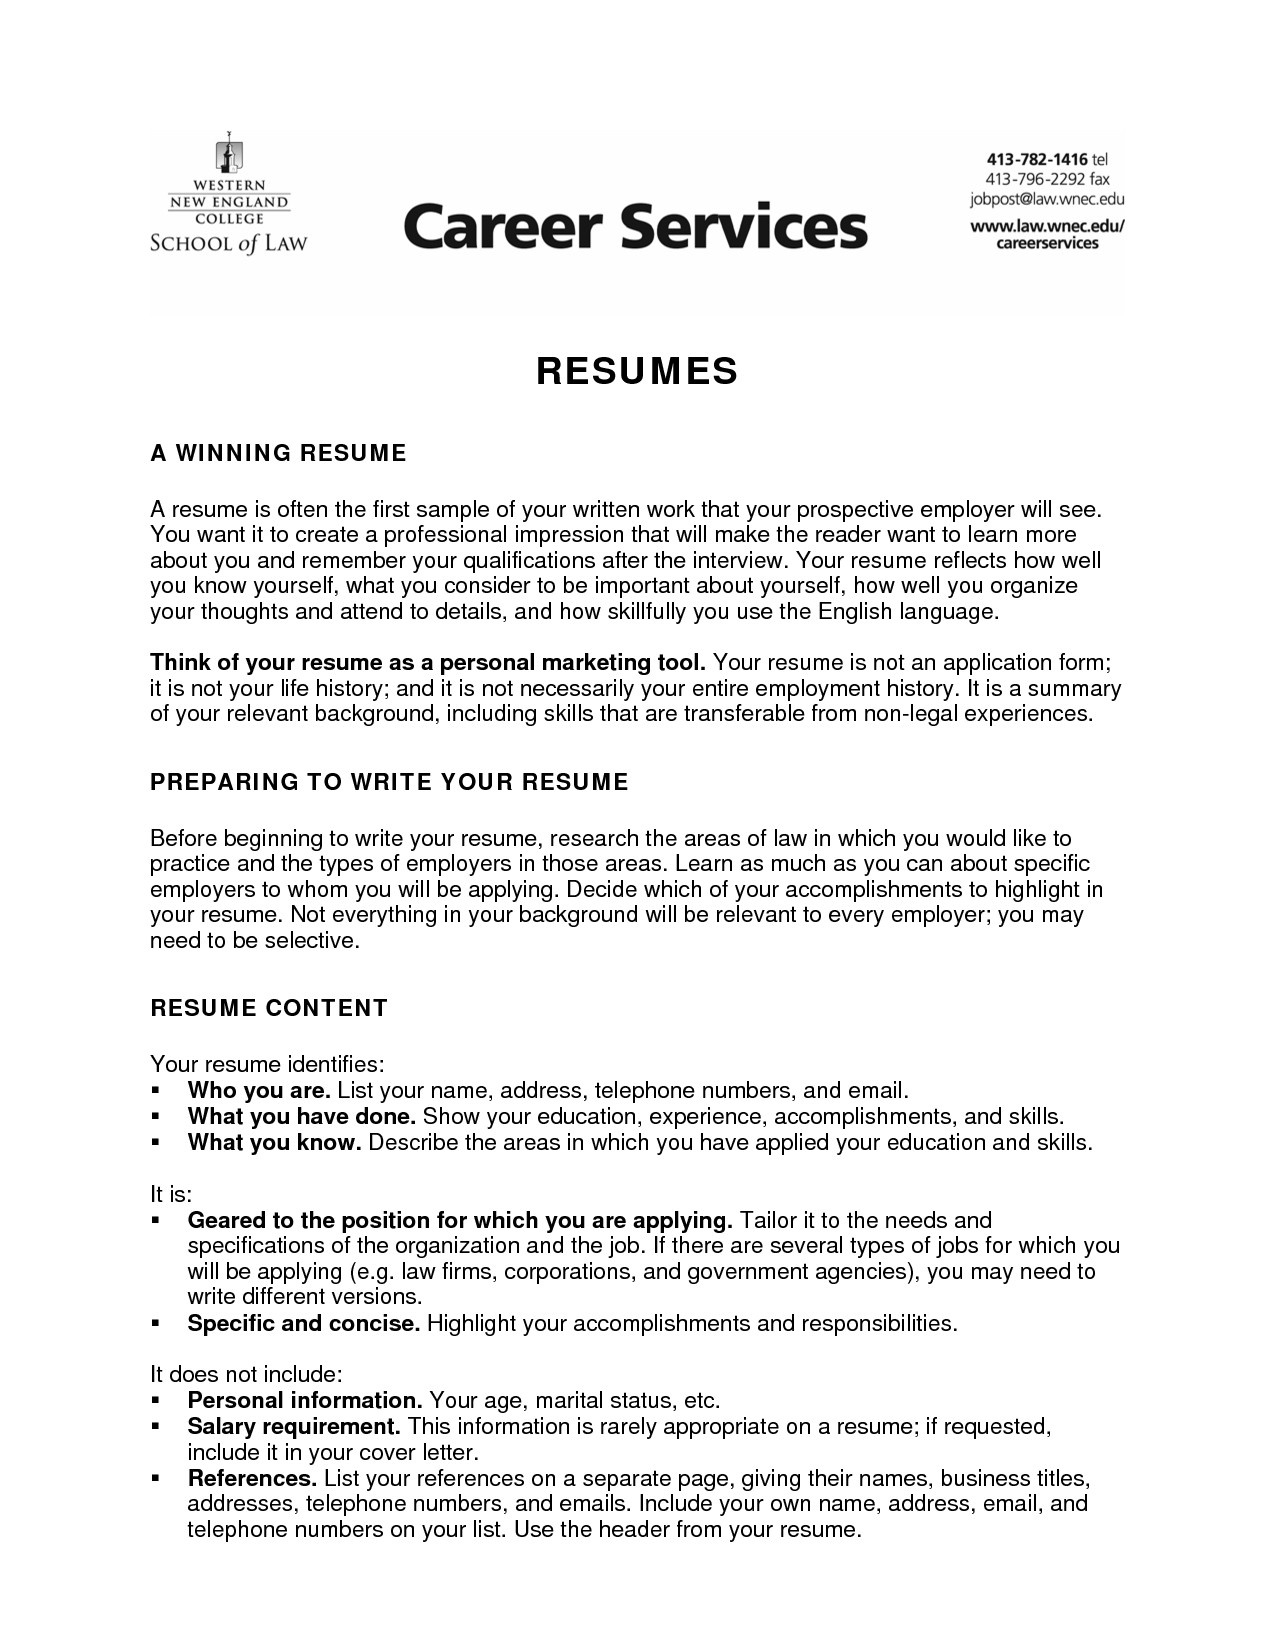 Resume for Marketing Job - Nursing Resume Objective Examples Best Elegant Good Nursing